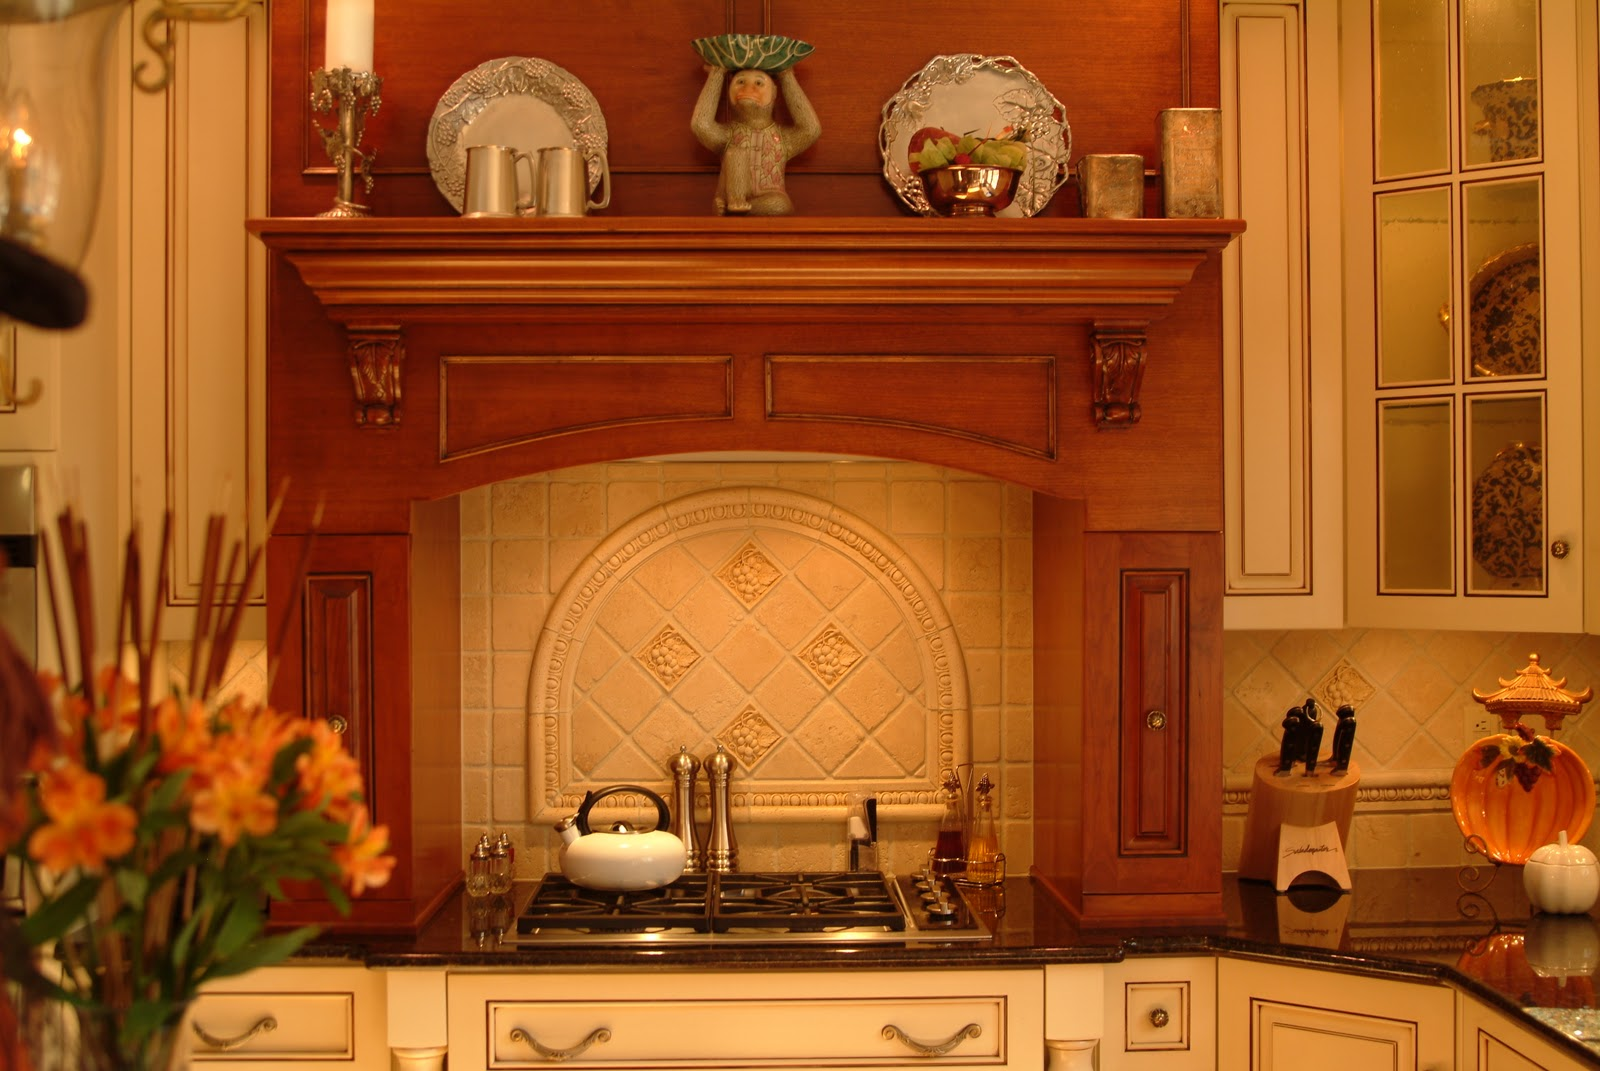 else. The cabinets were painted cream with a chocolate glaze